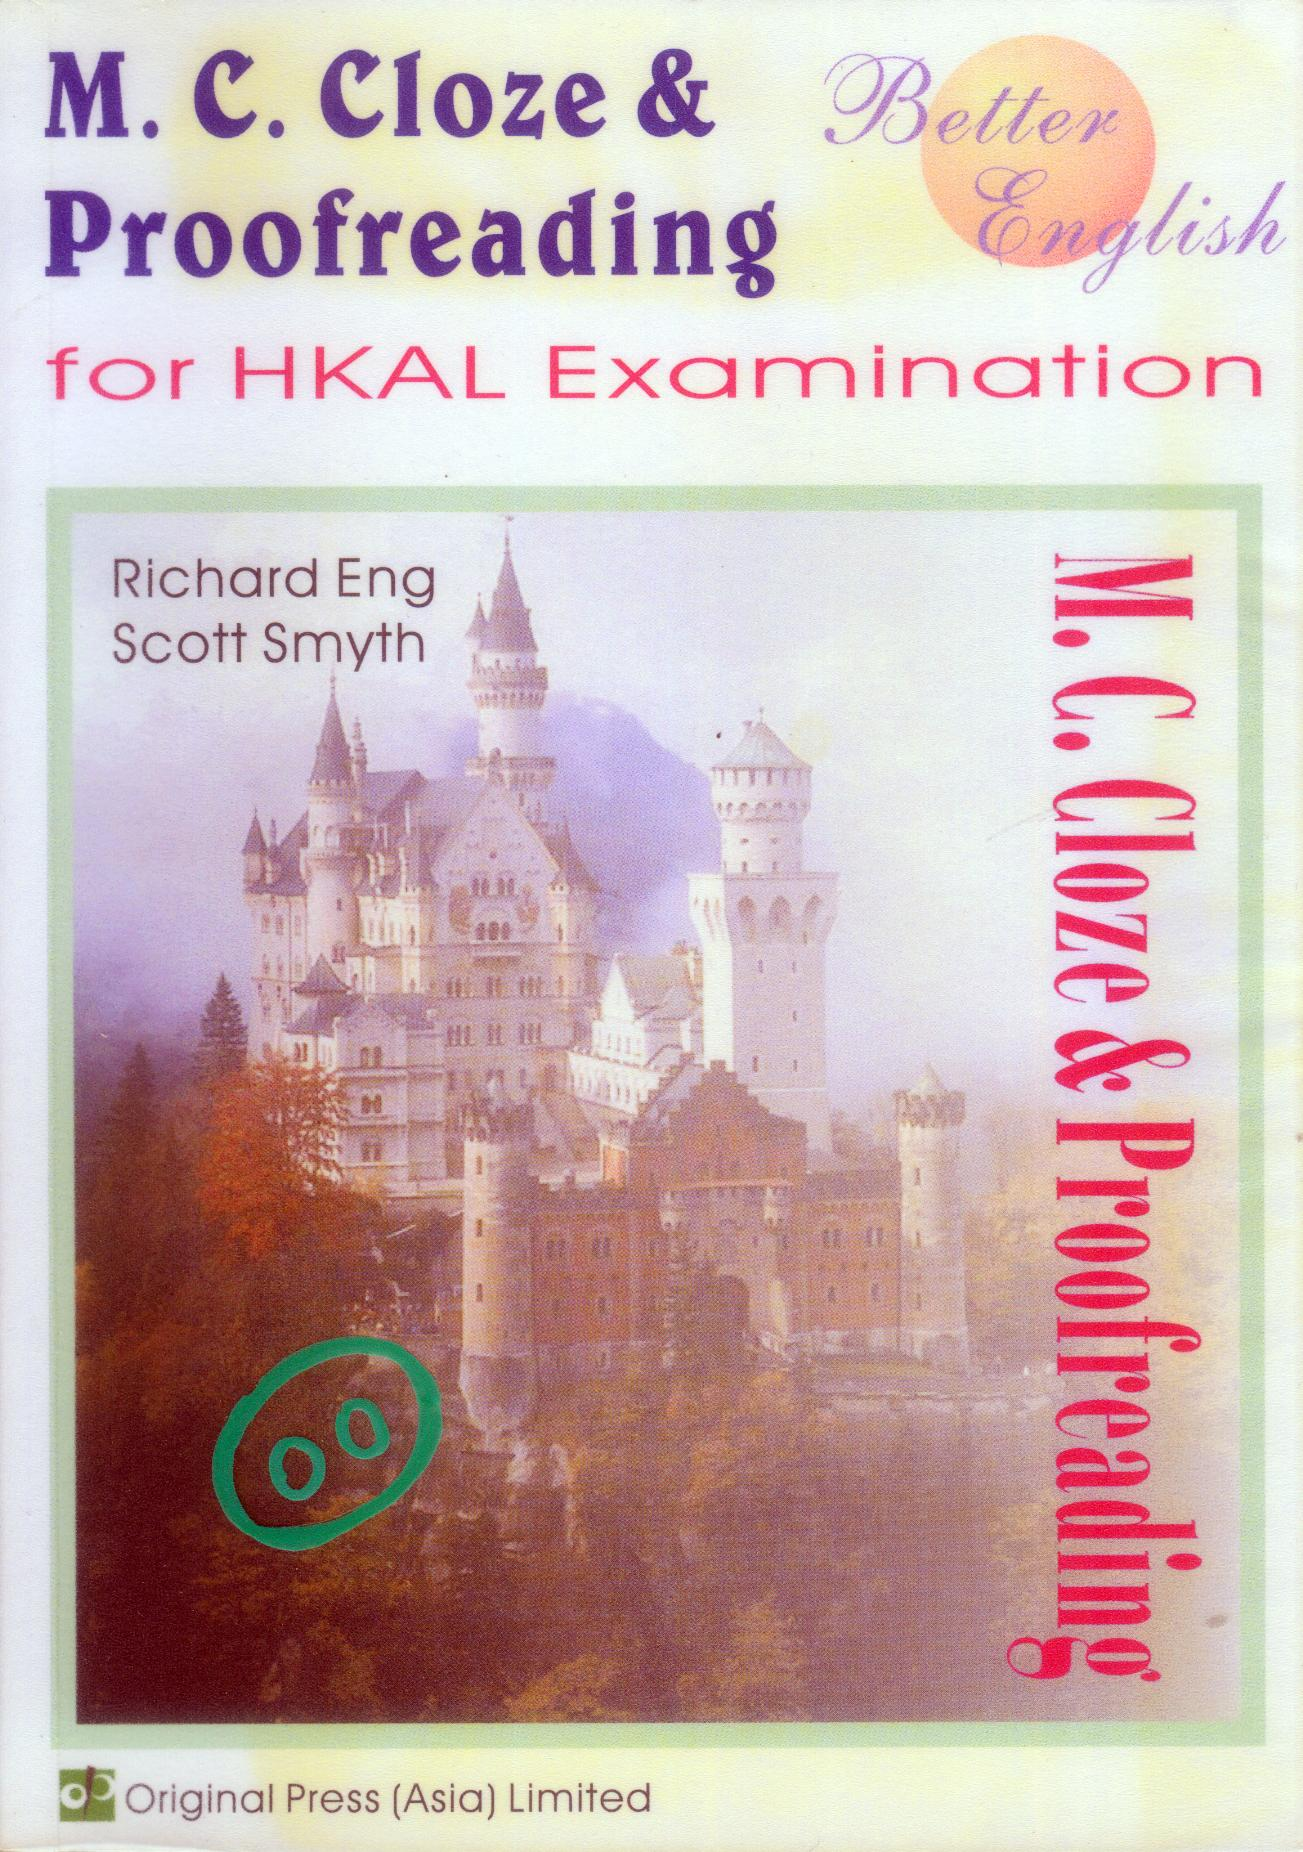 M.C. Cloze & Proofreading for HKAL Examination